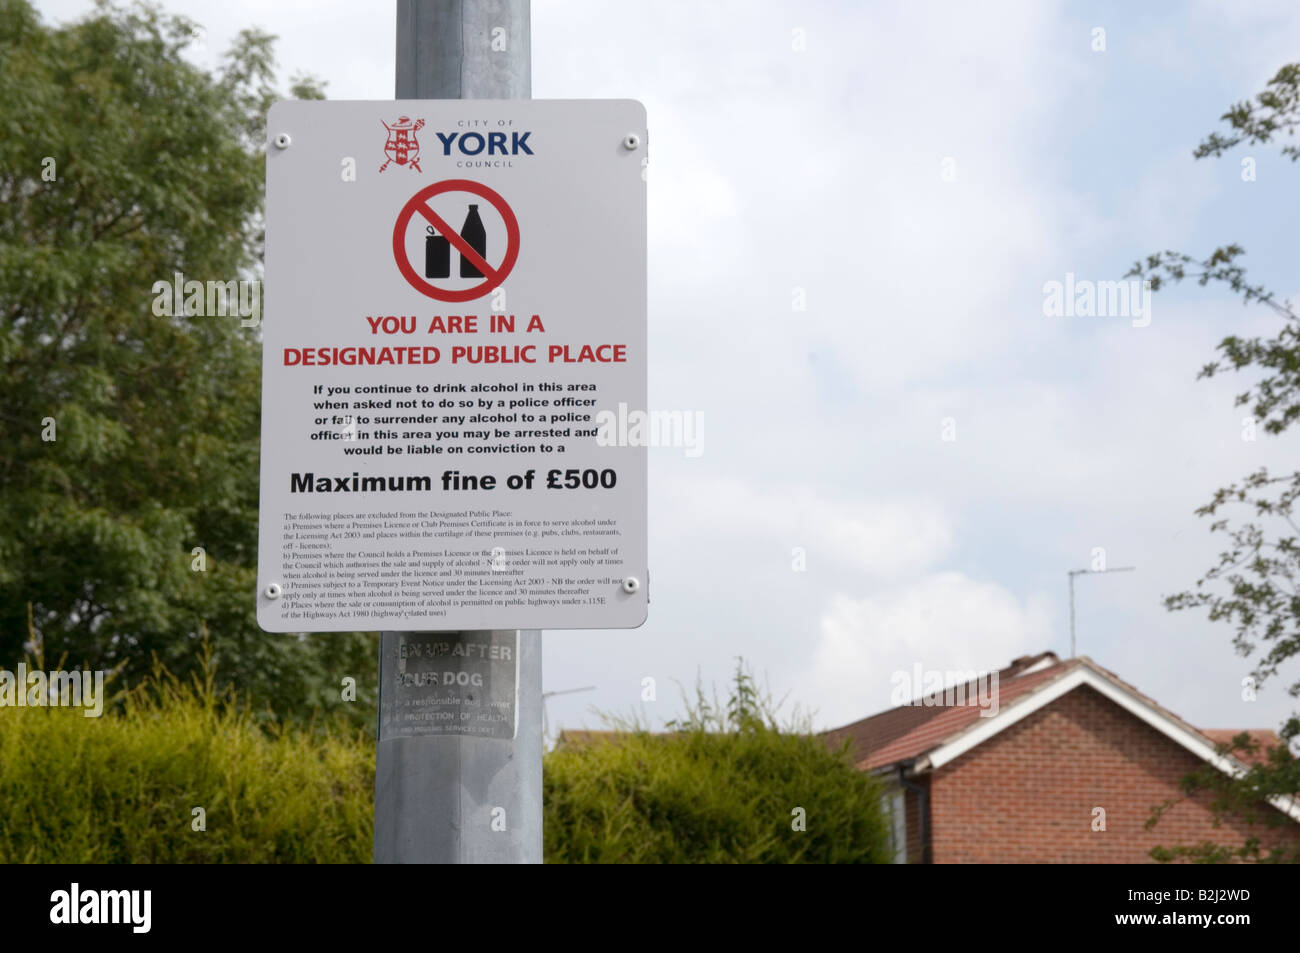 alcohol prohibition zone sign in york village strensall banning consumption on street drinking drinkers no residential - Stock Image